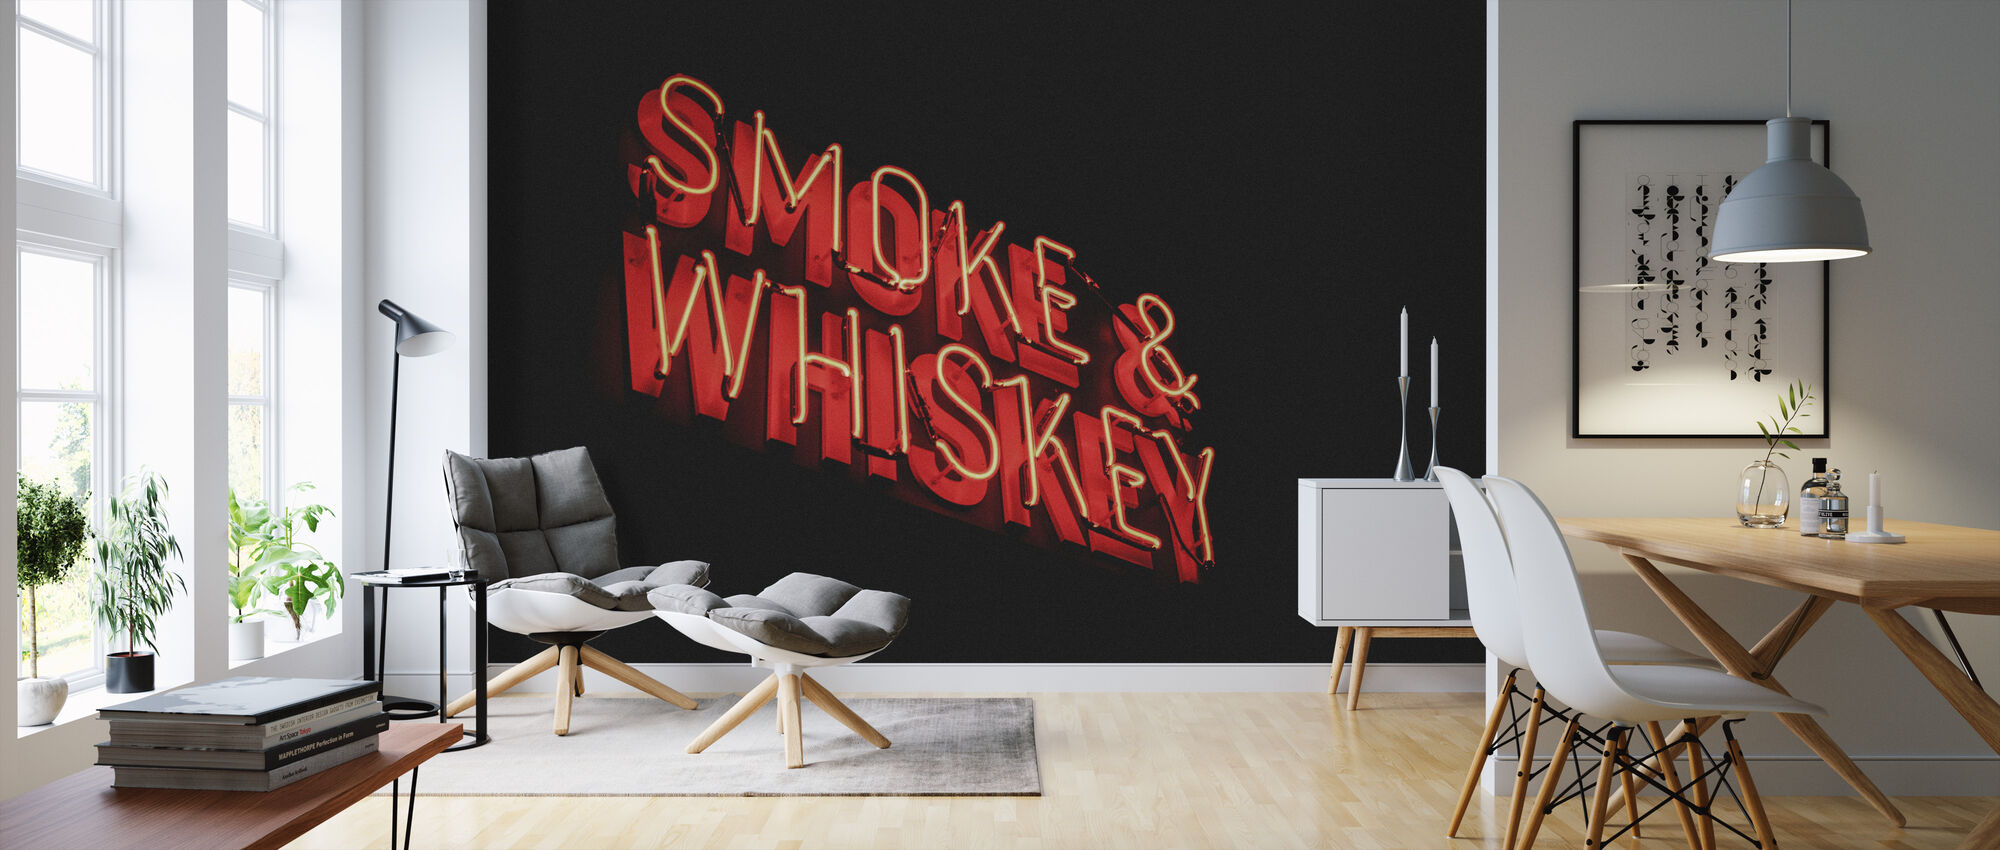 Smoke and Whiskey - Wallpaper - Living Room